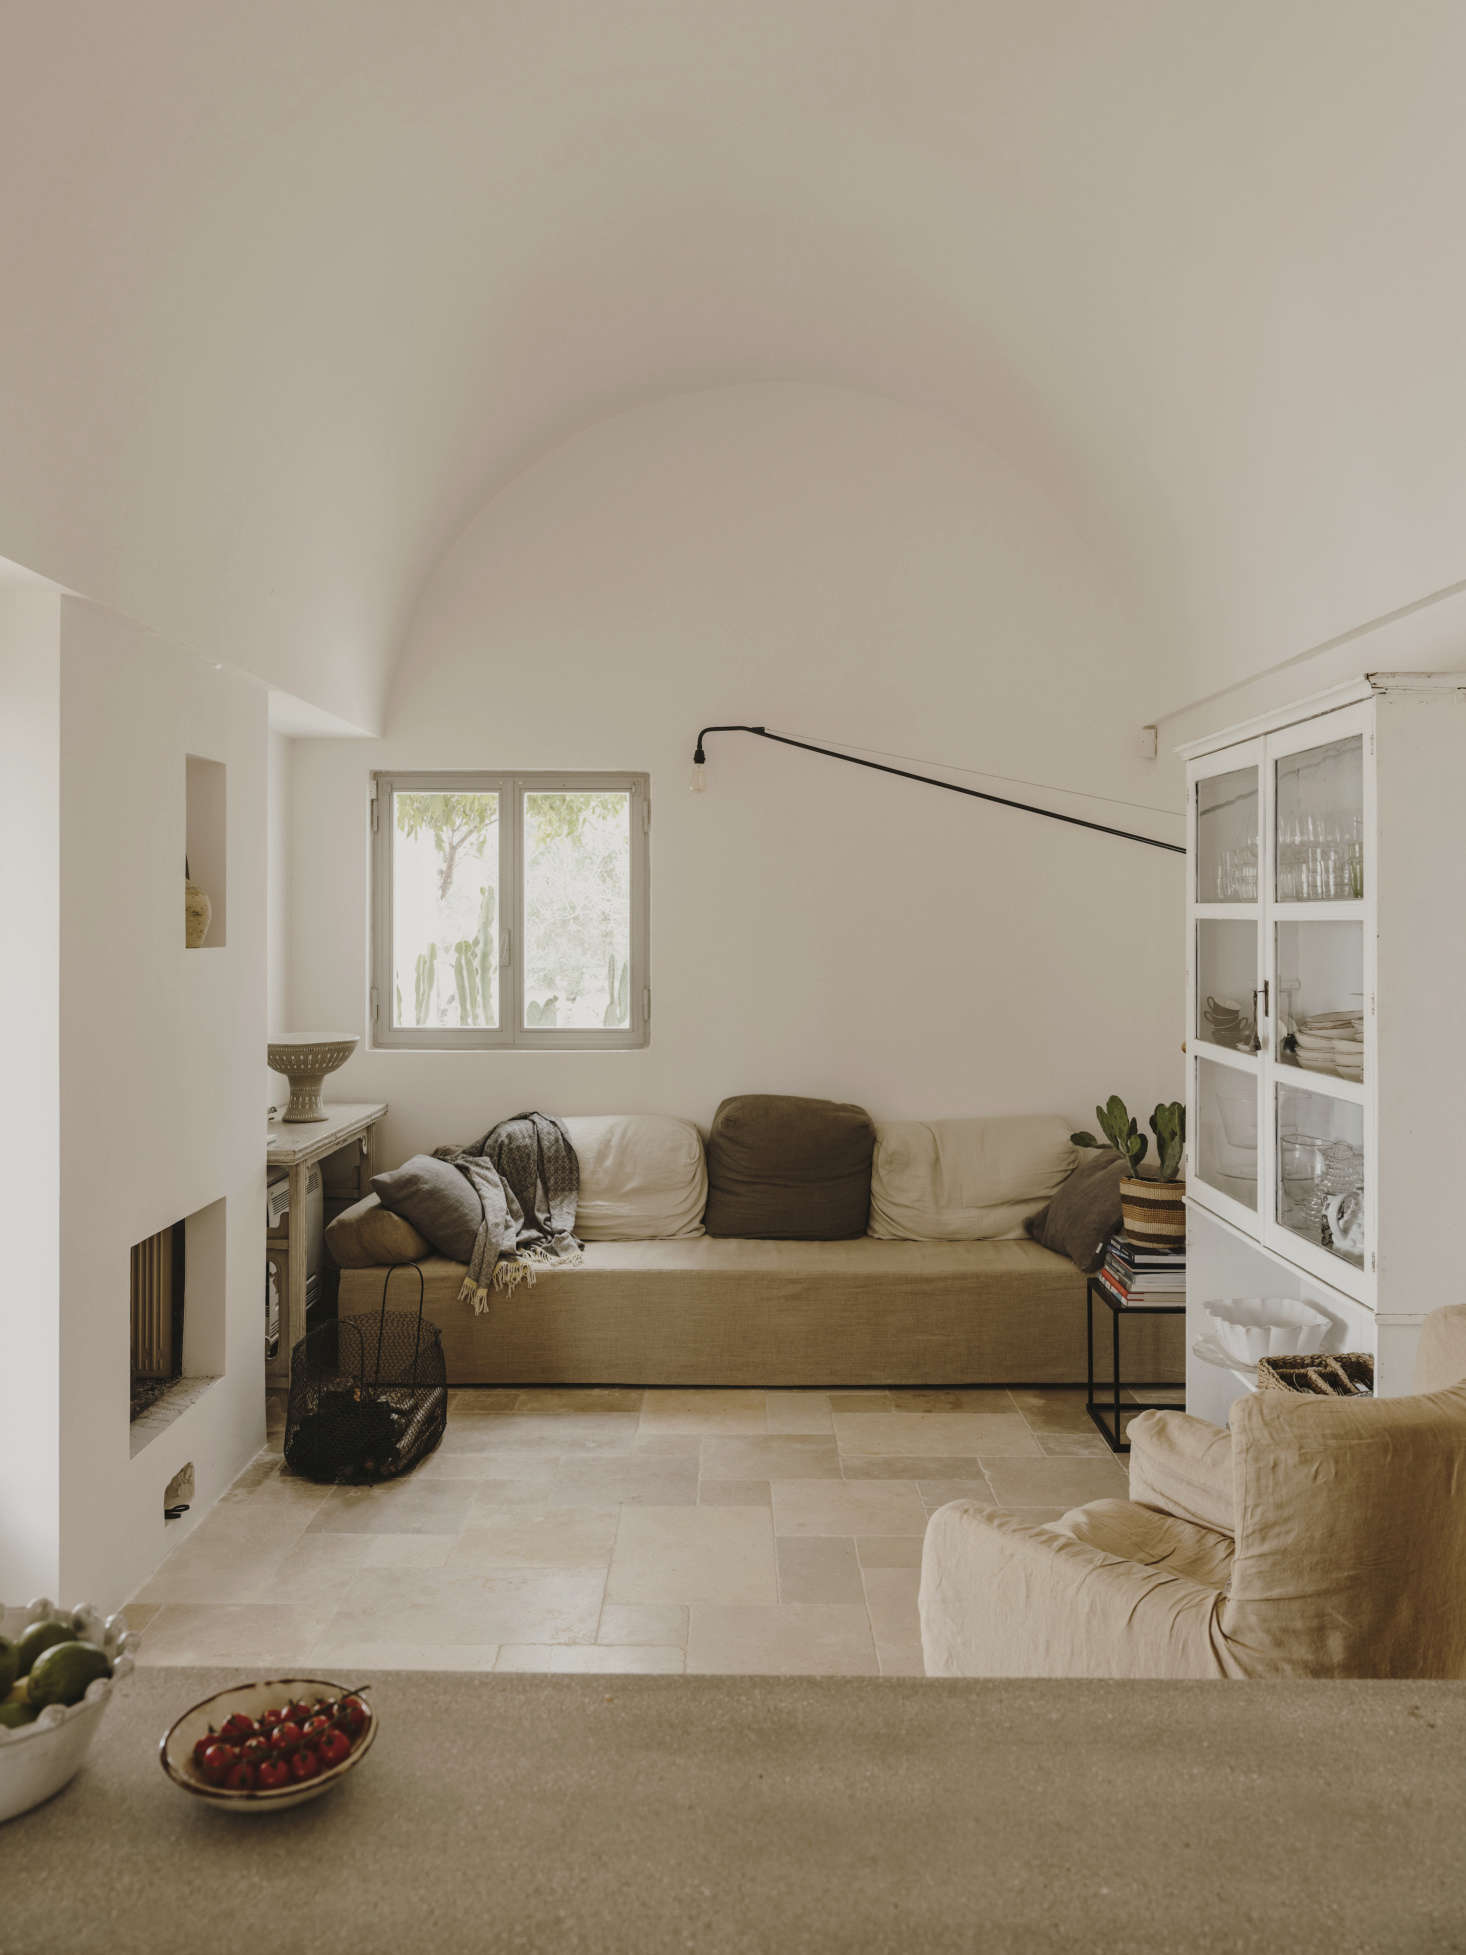 A casual living area features a low-slung, ad-hoc couch, a glass-fronted cabinet, and a long-armed black wall light. For similar lights, see10 Easy Pieces: Simple Swing-Arm Wall Lights.